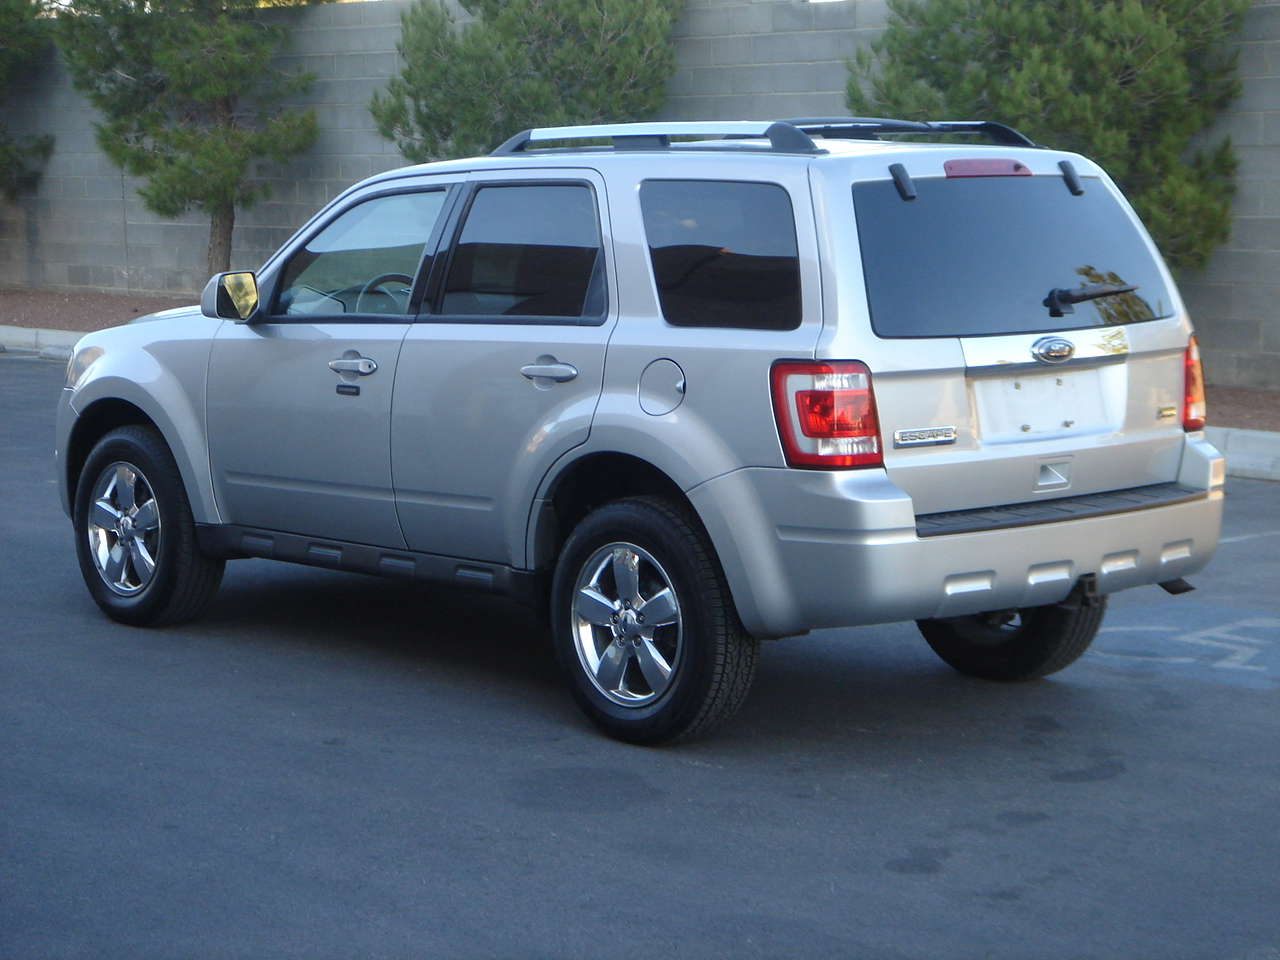 2008 Ford Escape Xls Picture of 2010 Ford Escape Limited, exterior